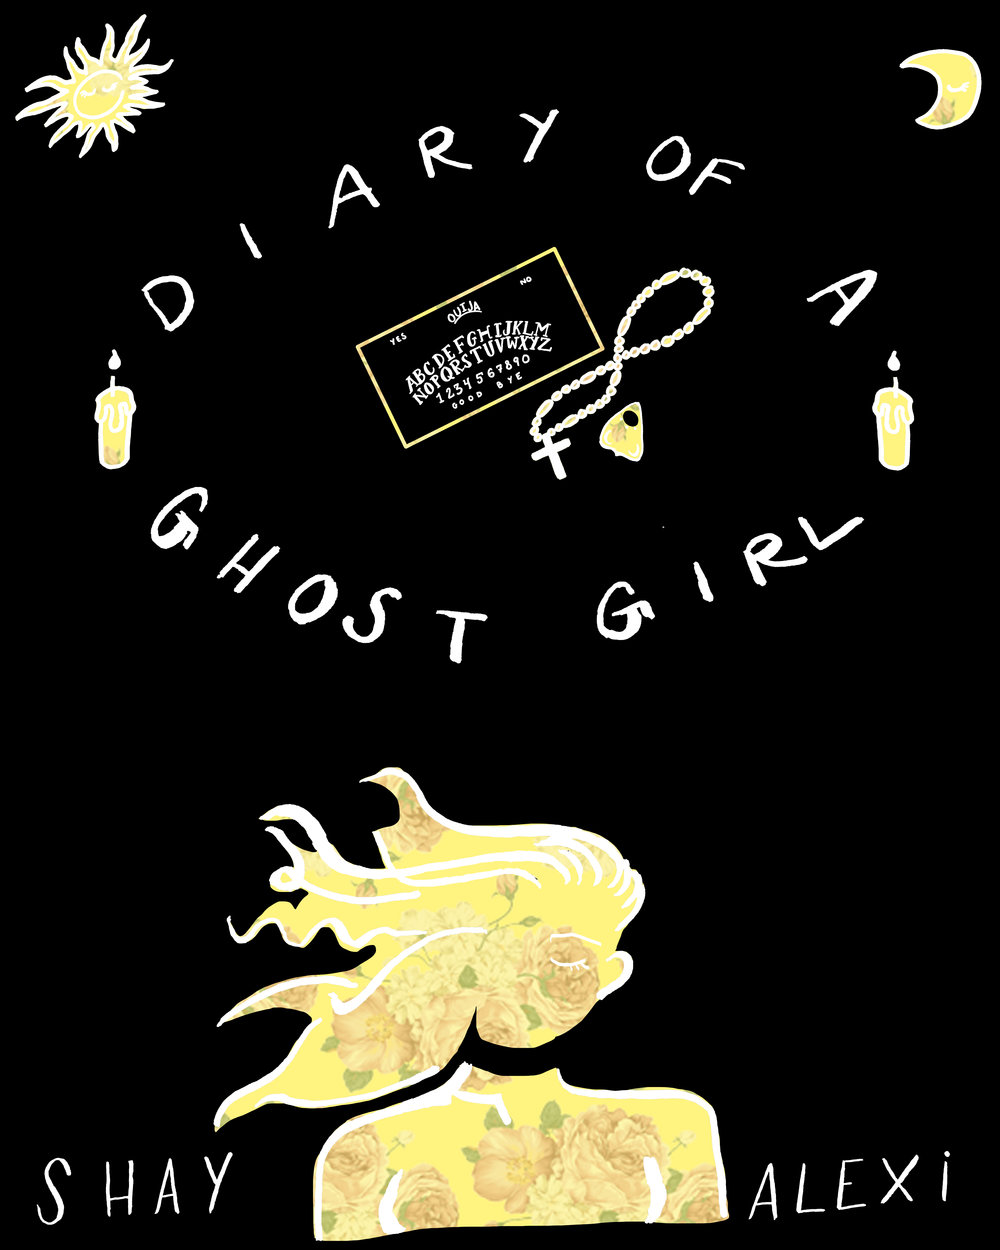 DIARY OF A GHOST GIRL - Shay's chapbook, DIARY OF A GHOST GIRL, was chosen for the 2018 Glass Poetry Prize and is scheduled for publication in March 2019! Subscribe to this year's series by clicking here or stay tuned for information regarding pre-ordering/ordering!